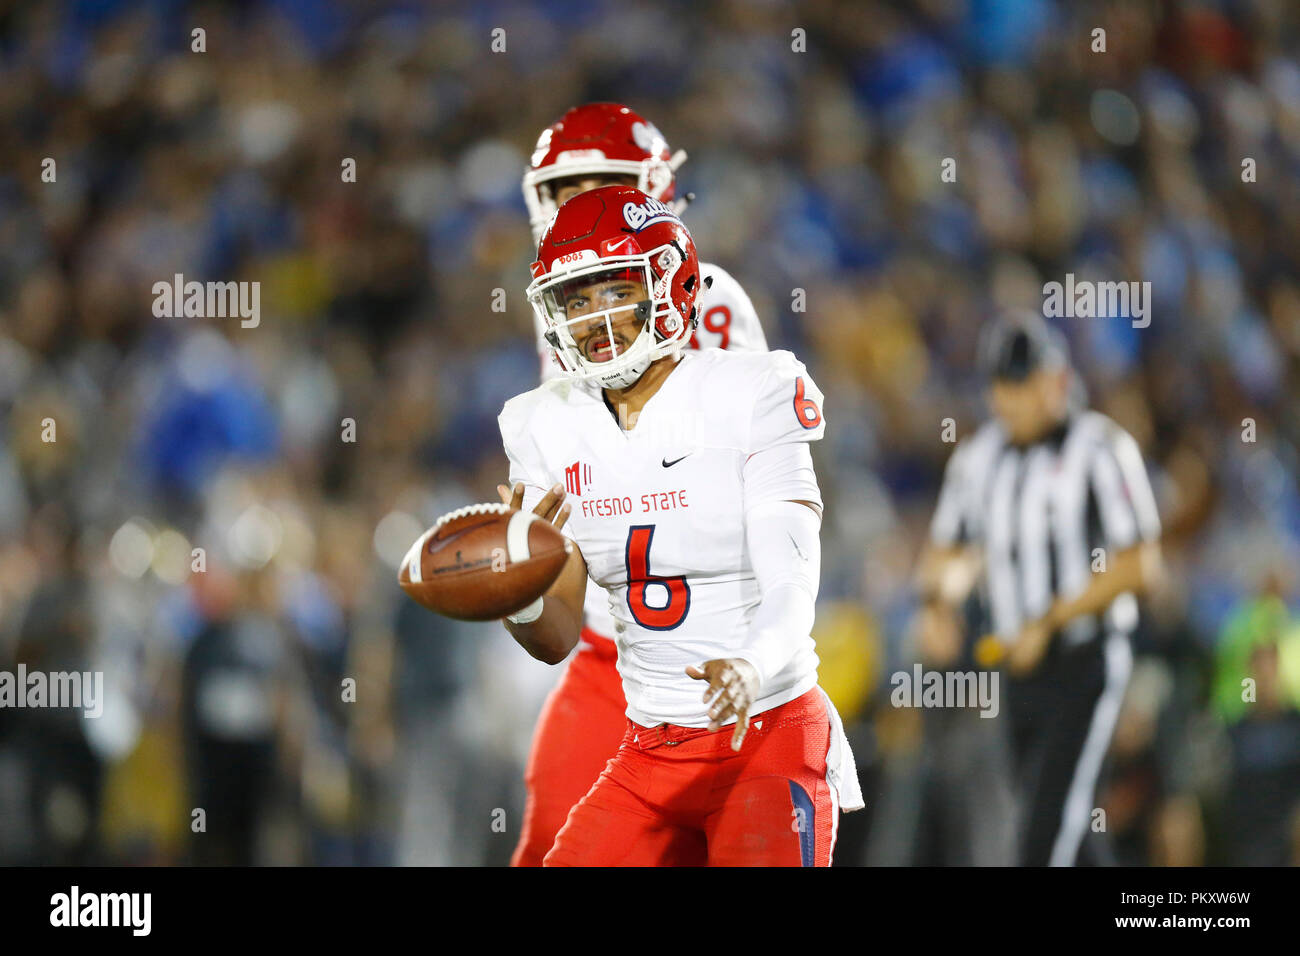 California, USA. September 15, 2018 Fresno State Bulldogs quarterback Marcus McMaryion #6 celebrates after scoring a touchdown in the third quarter during the football game between the UCLA Bruins and the Fresno State Bulldogs at the Rose Bowl in Pasadena, California. Charles Baus/CSM Credit: Cal Sport Media/Alamy Live News - Stock Image